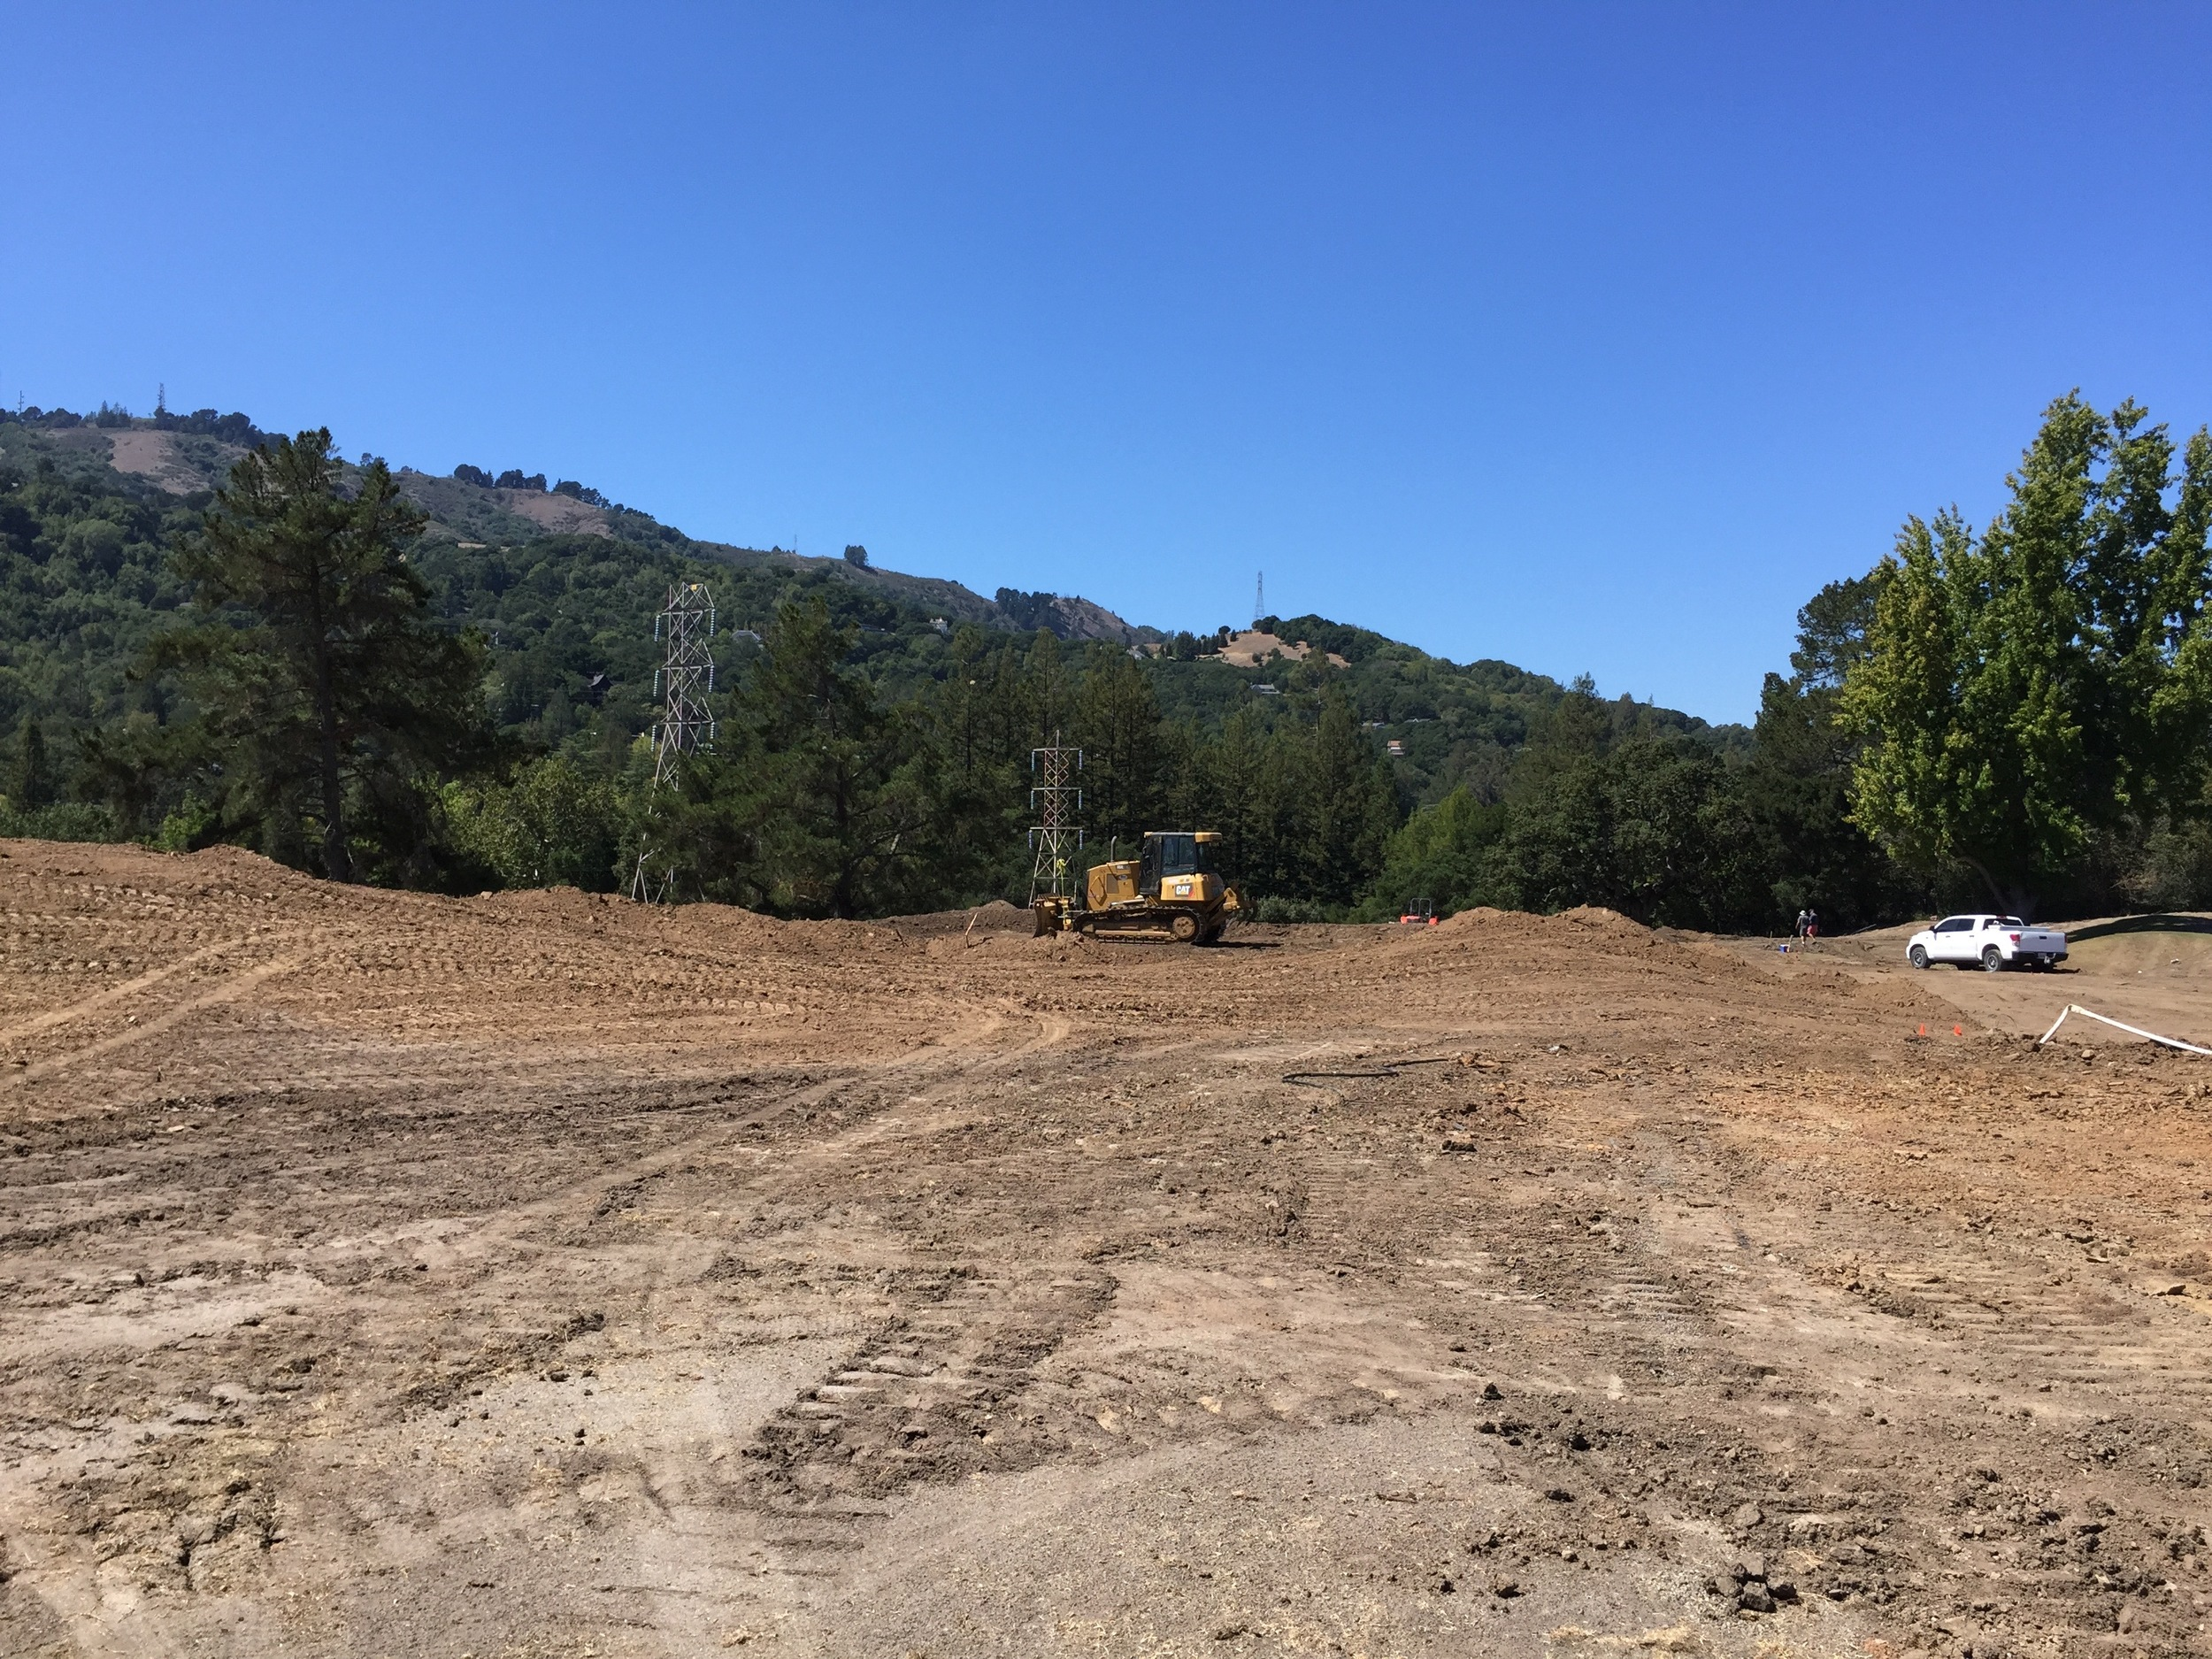 hochstein-design-orinda-cc-hole-12-construction-2.jpg